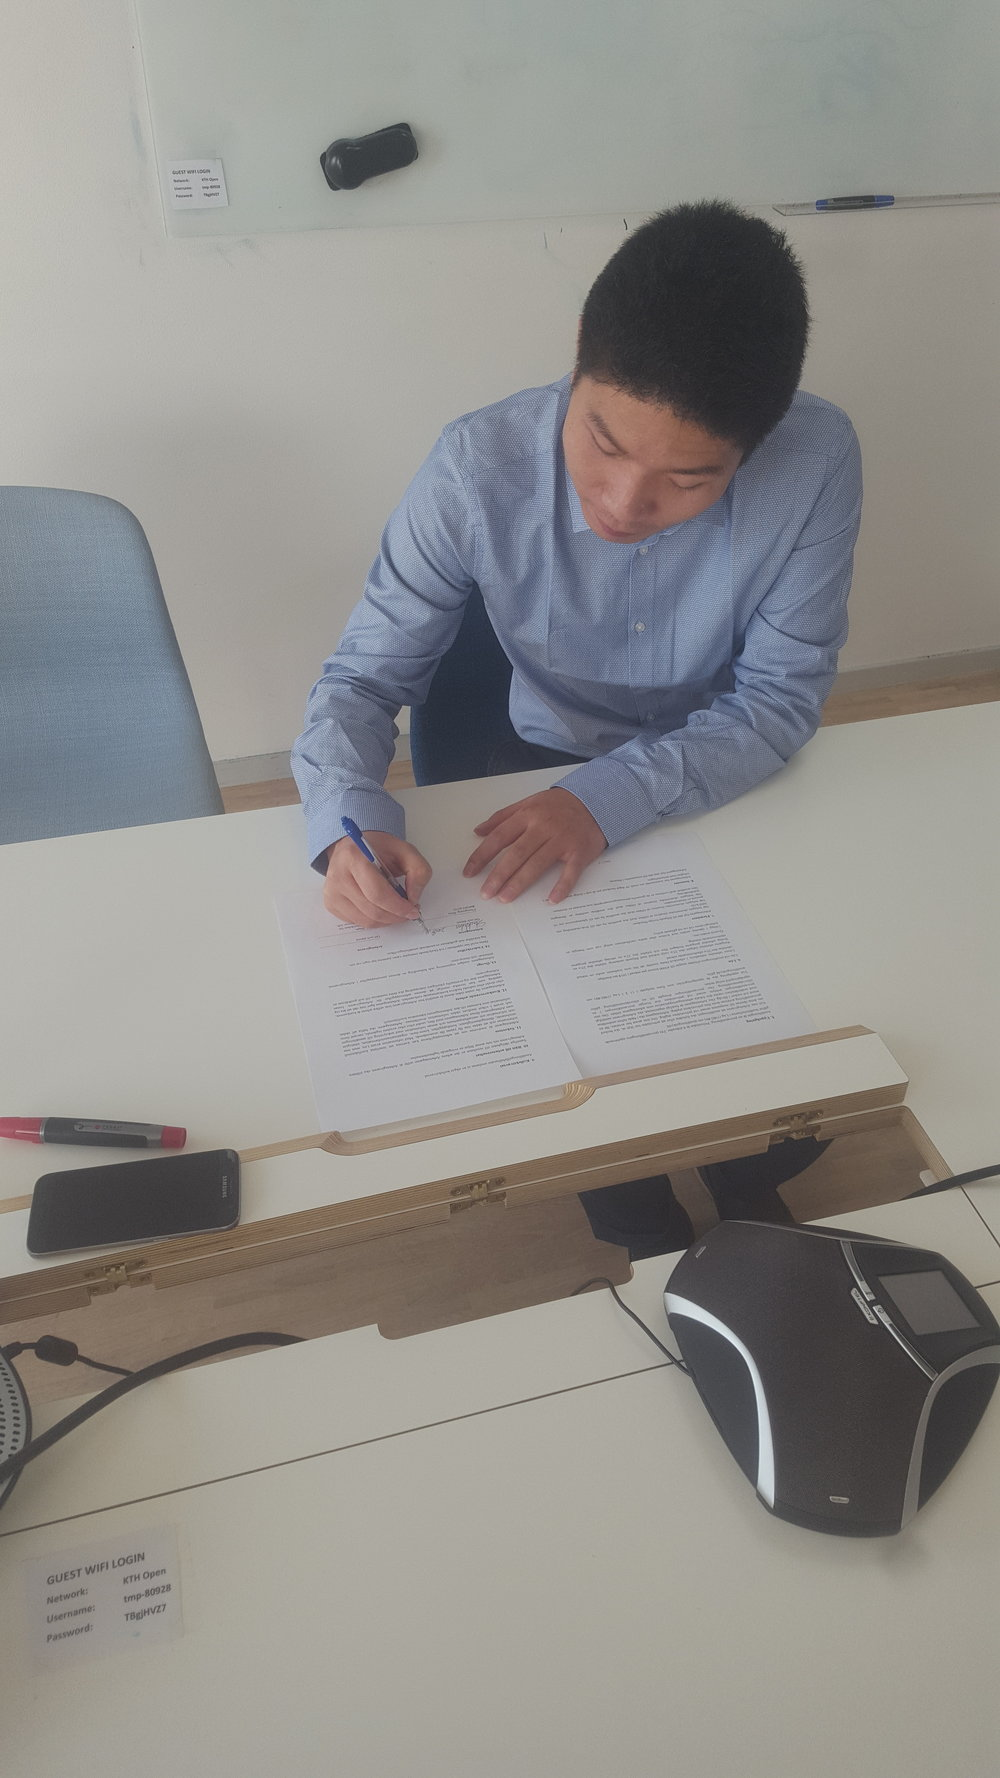 Chun signing his employment contract!